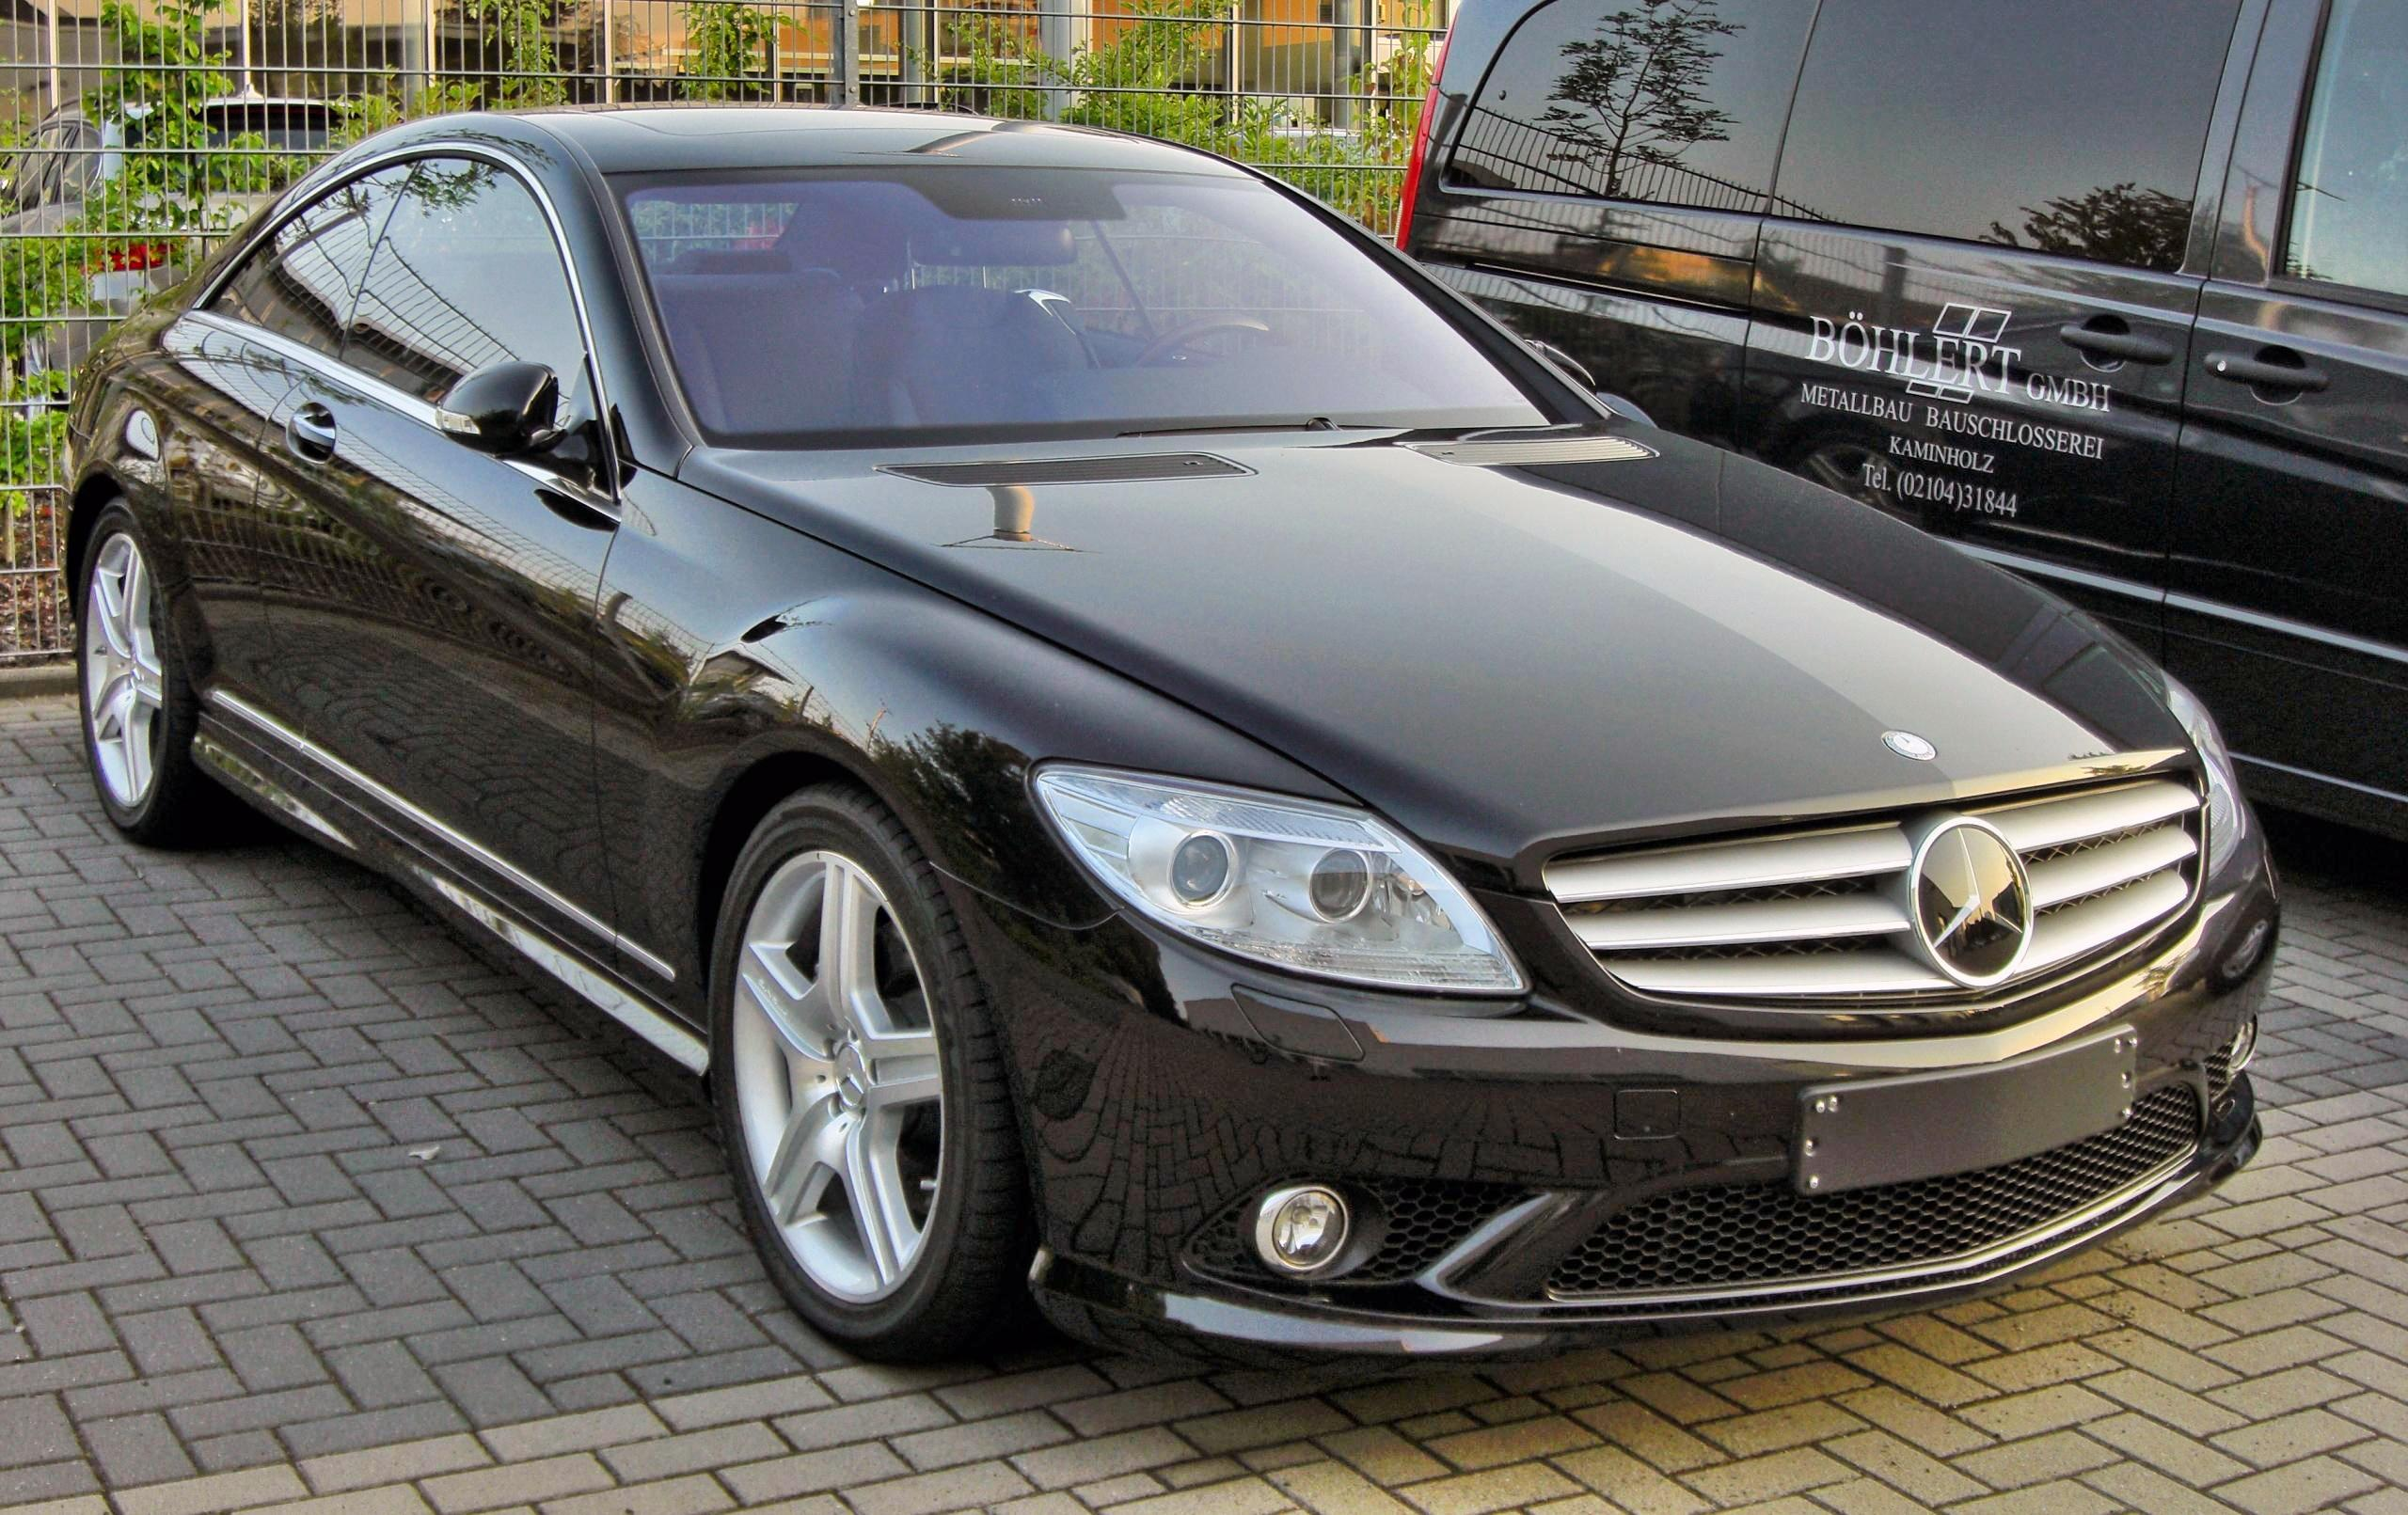 file mercedes cl 500 amg sportpaket 20090704 front jpg wikimedia commons. Black Bedroom Furniture Sets. Home Design Ideas